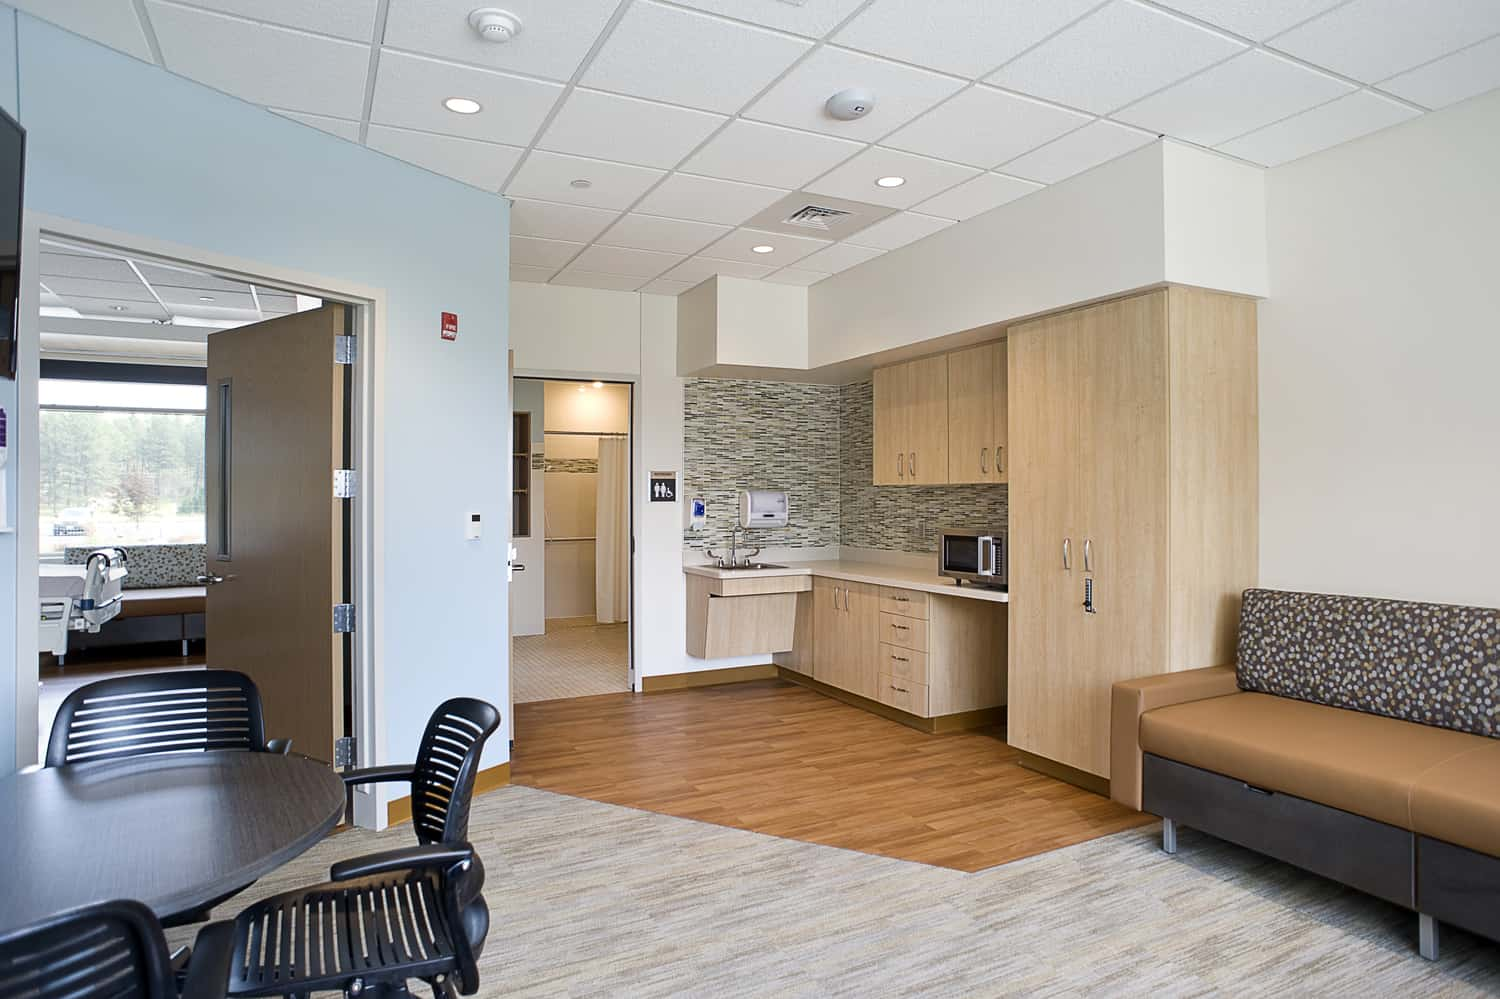 Regional Health Custer Hospital Replacement Critical Access Hospital and Clinic